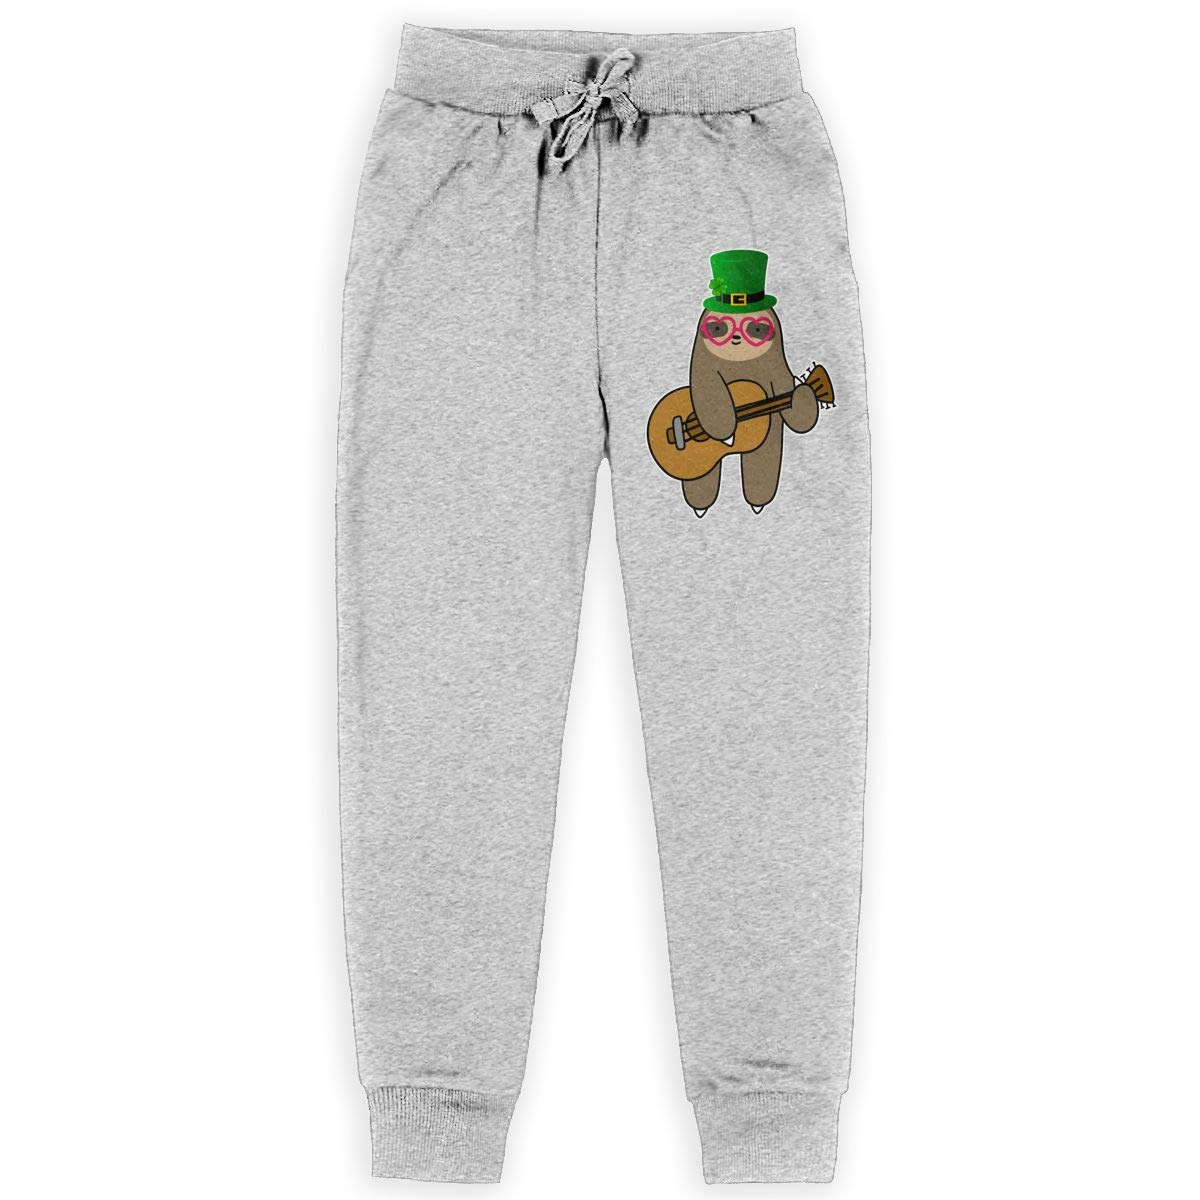 Sloth Playing Guitar Teenagers Cotton Sweatpants Comfortable Joggers Pants Active Pants